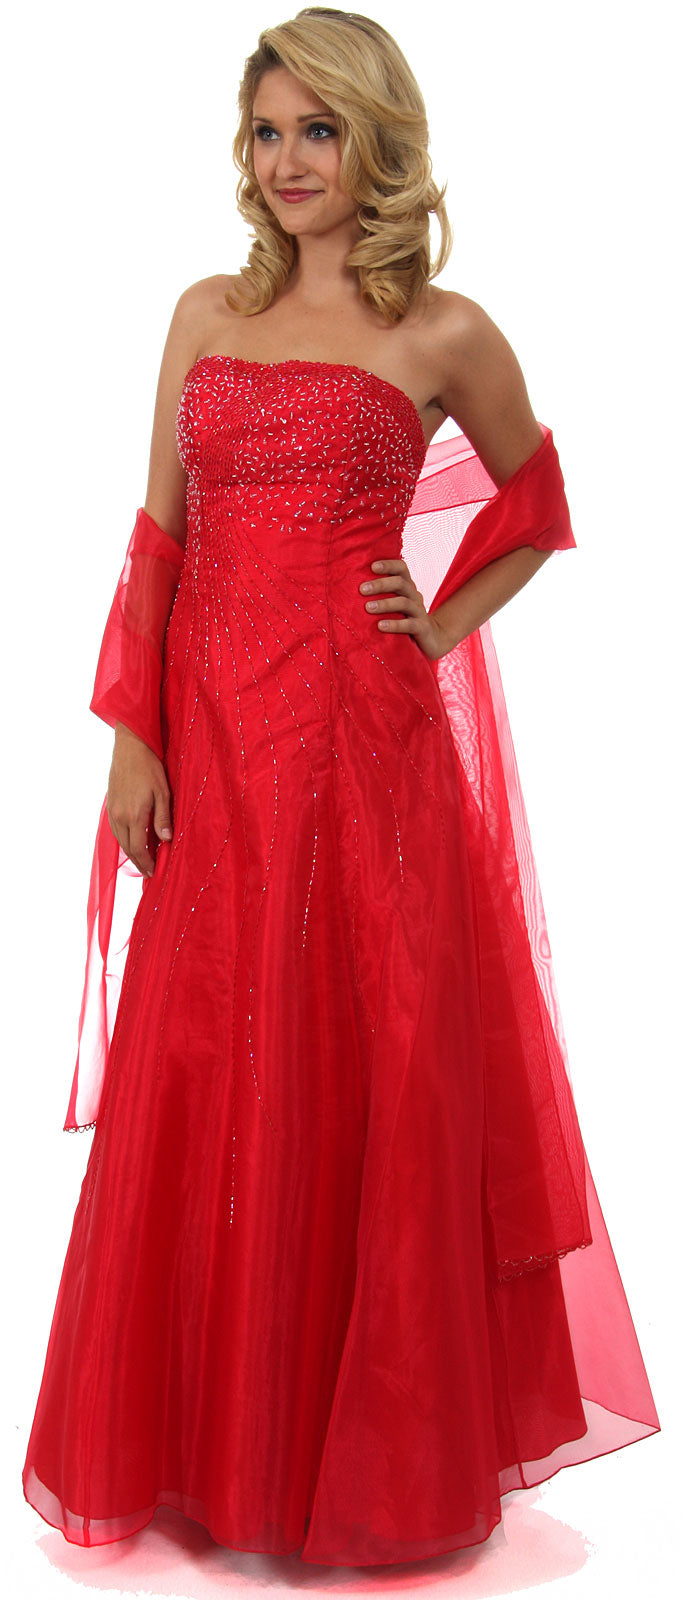 Main image of Strapless A-line Layered Beaded Organza Prom Dress